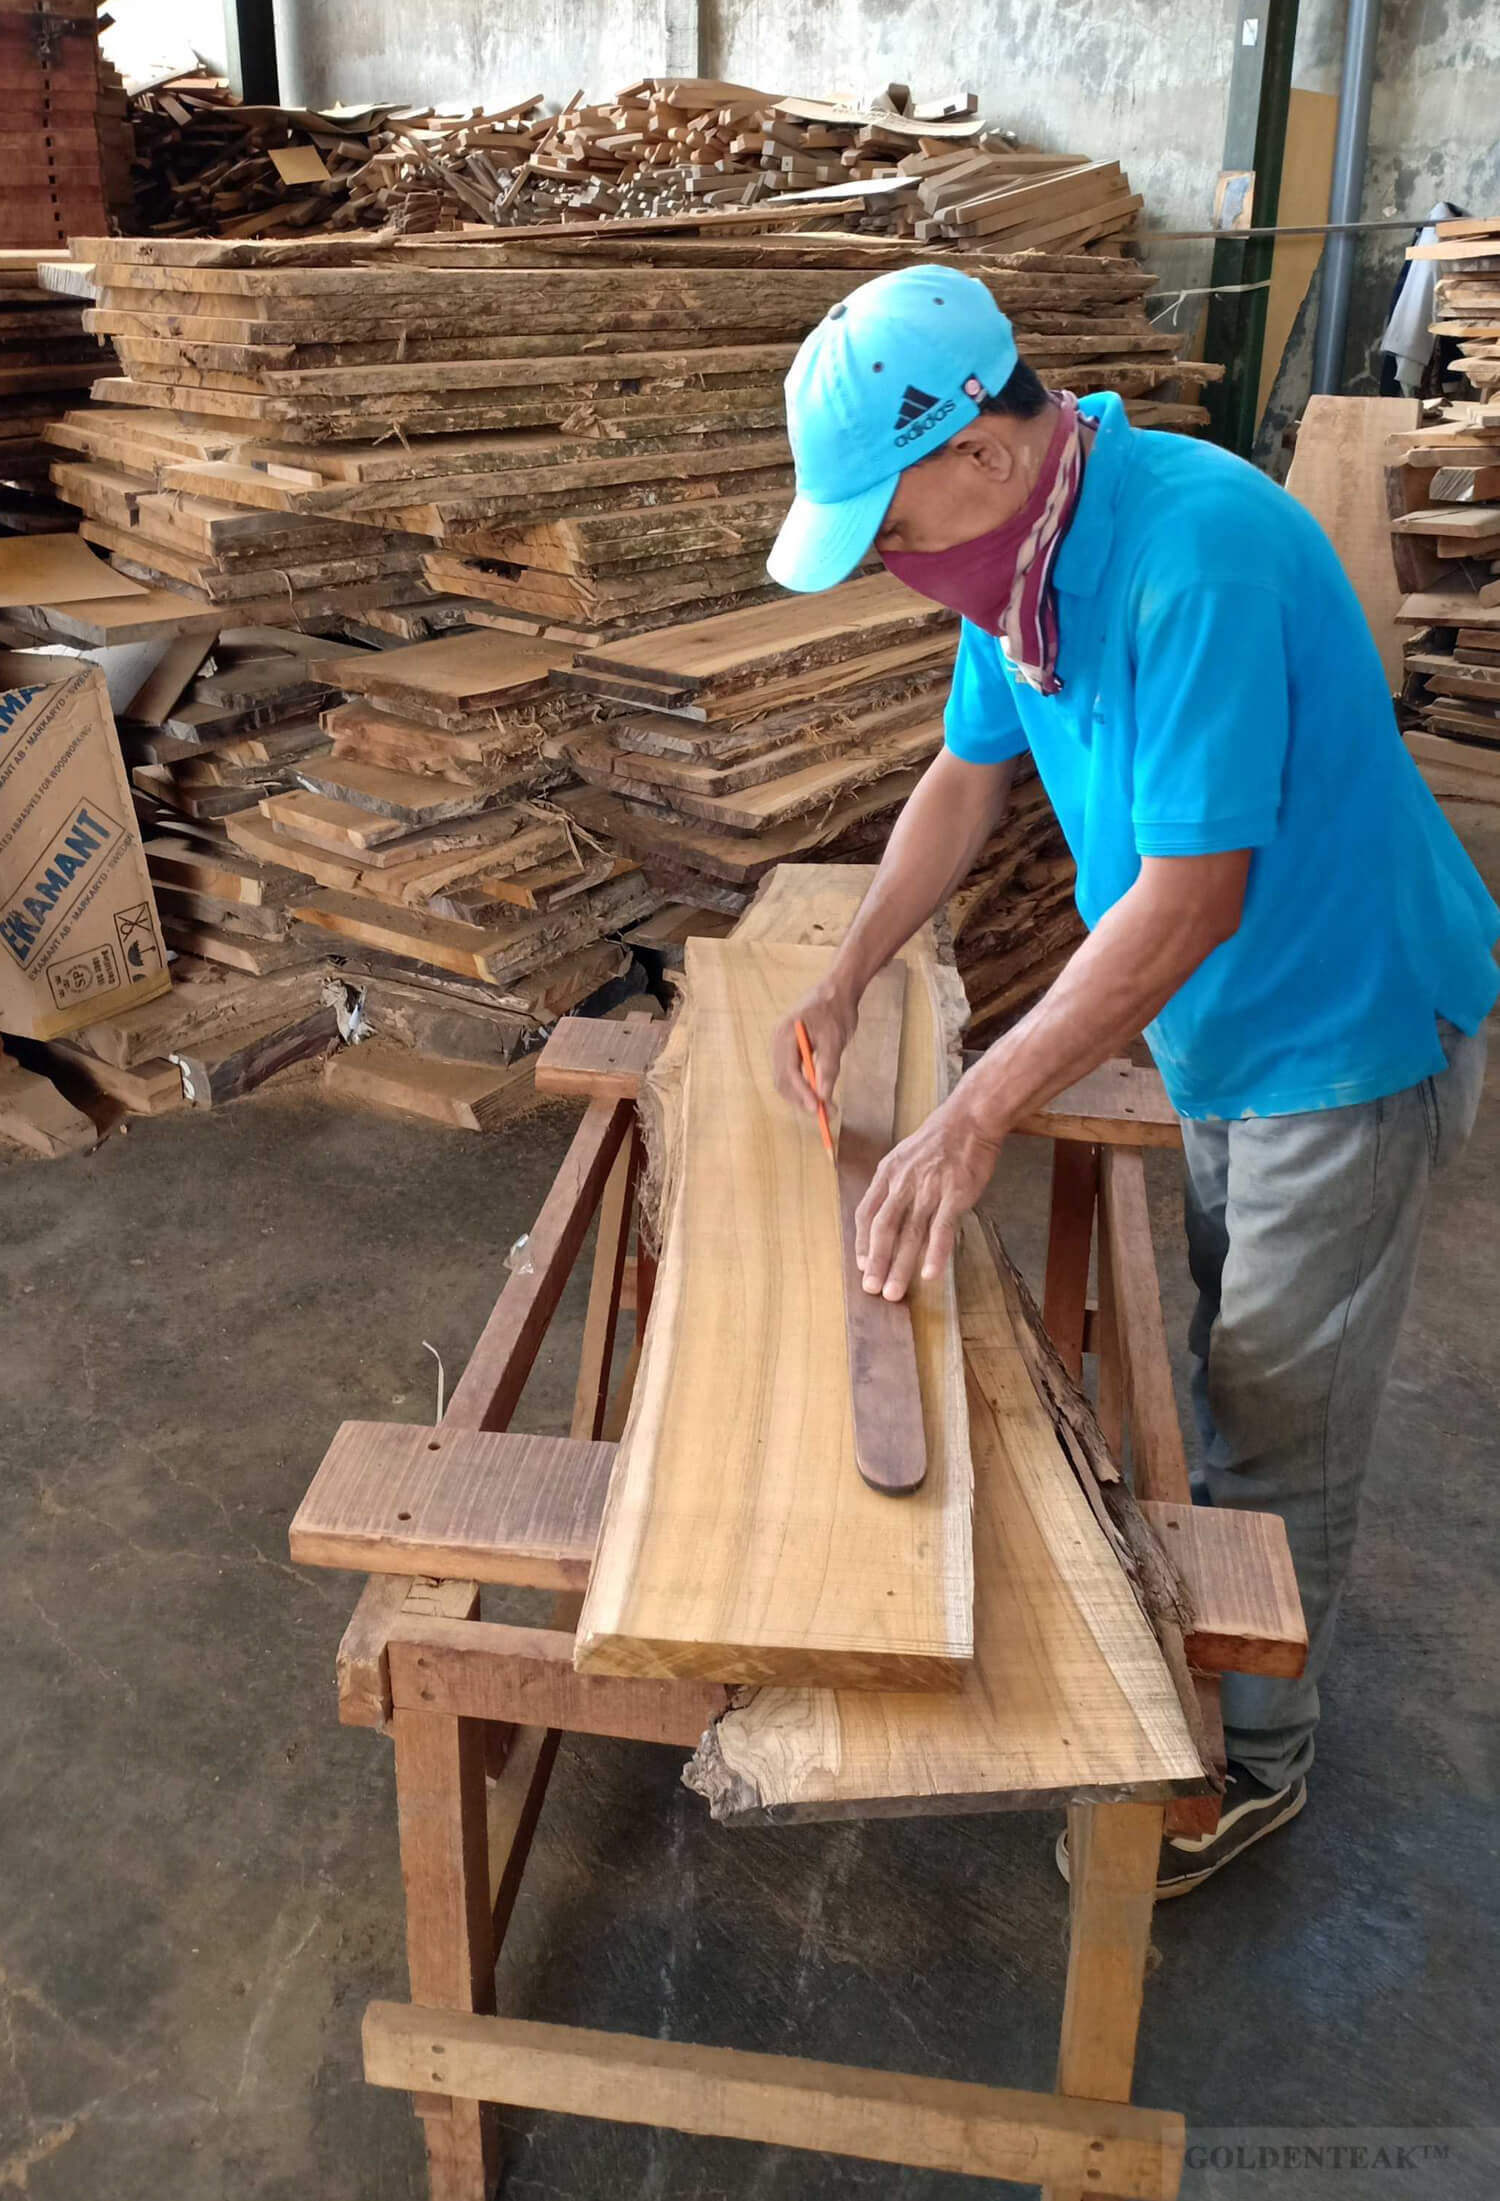 Choosing Heartwood Sections for Grade A Premium Quality Outdoor Furniture - Goldenteak